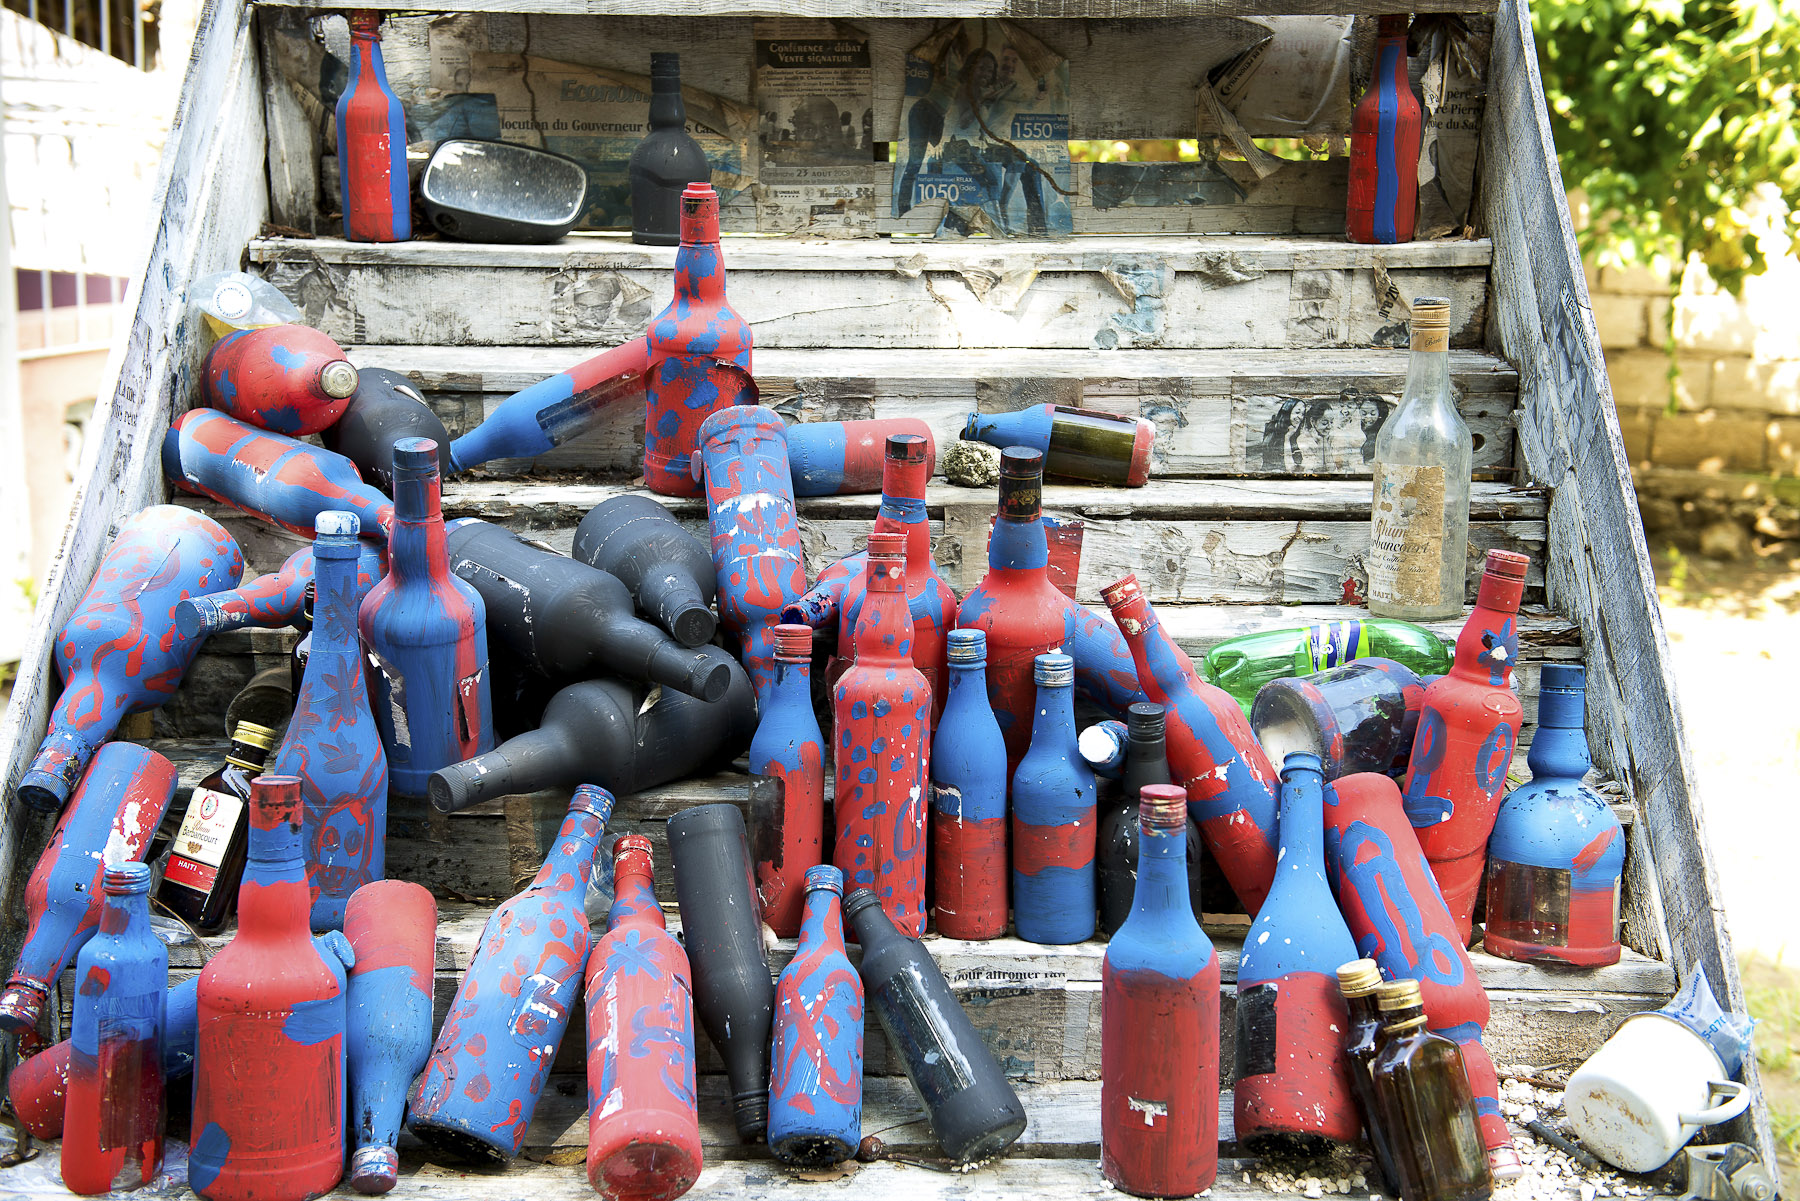 Vodou Bottles. 2012, Archival pigment on cotton rag paper, 20 x 30 inches